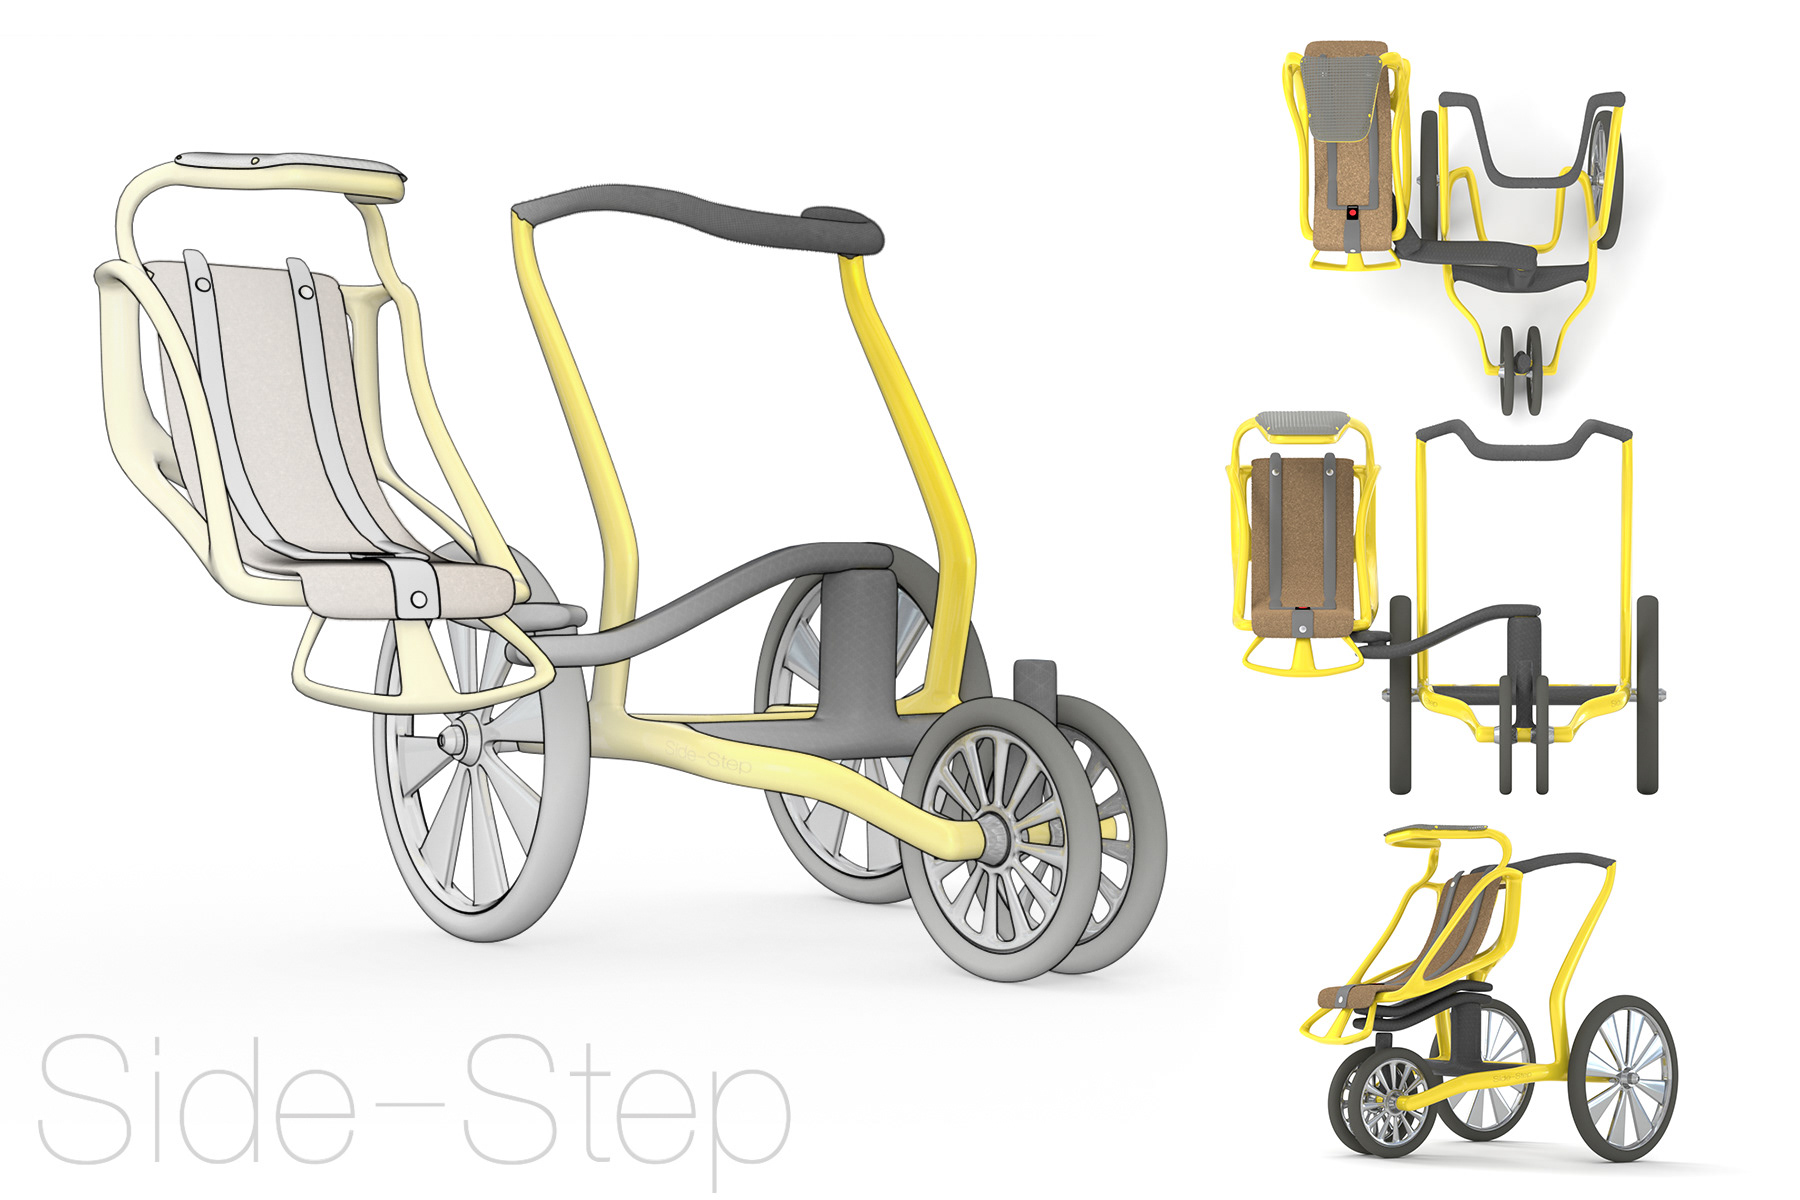 Side Step Product Ideation